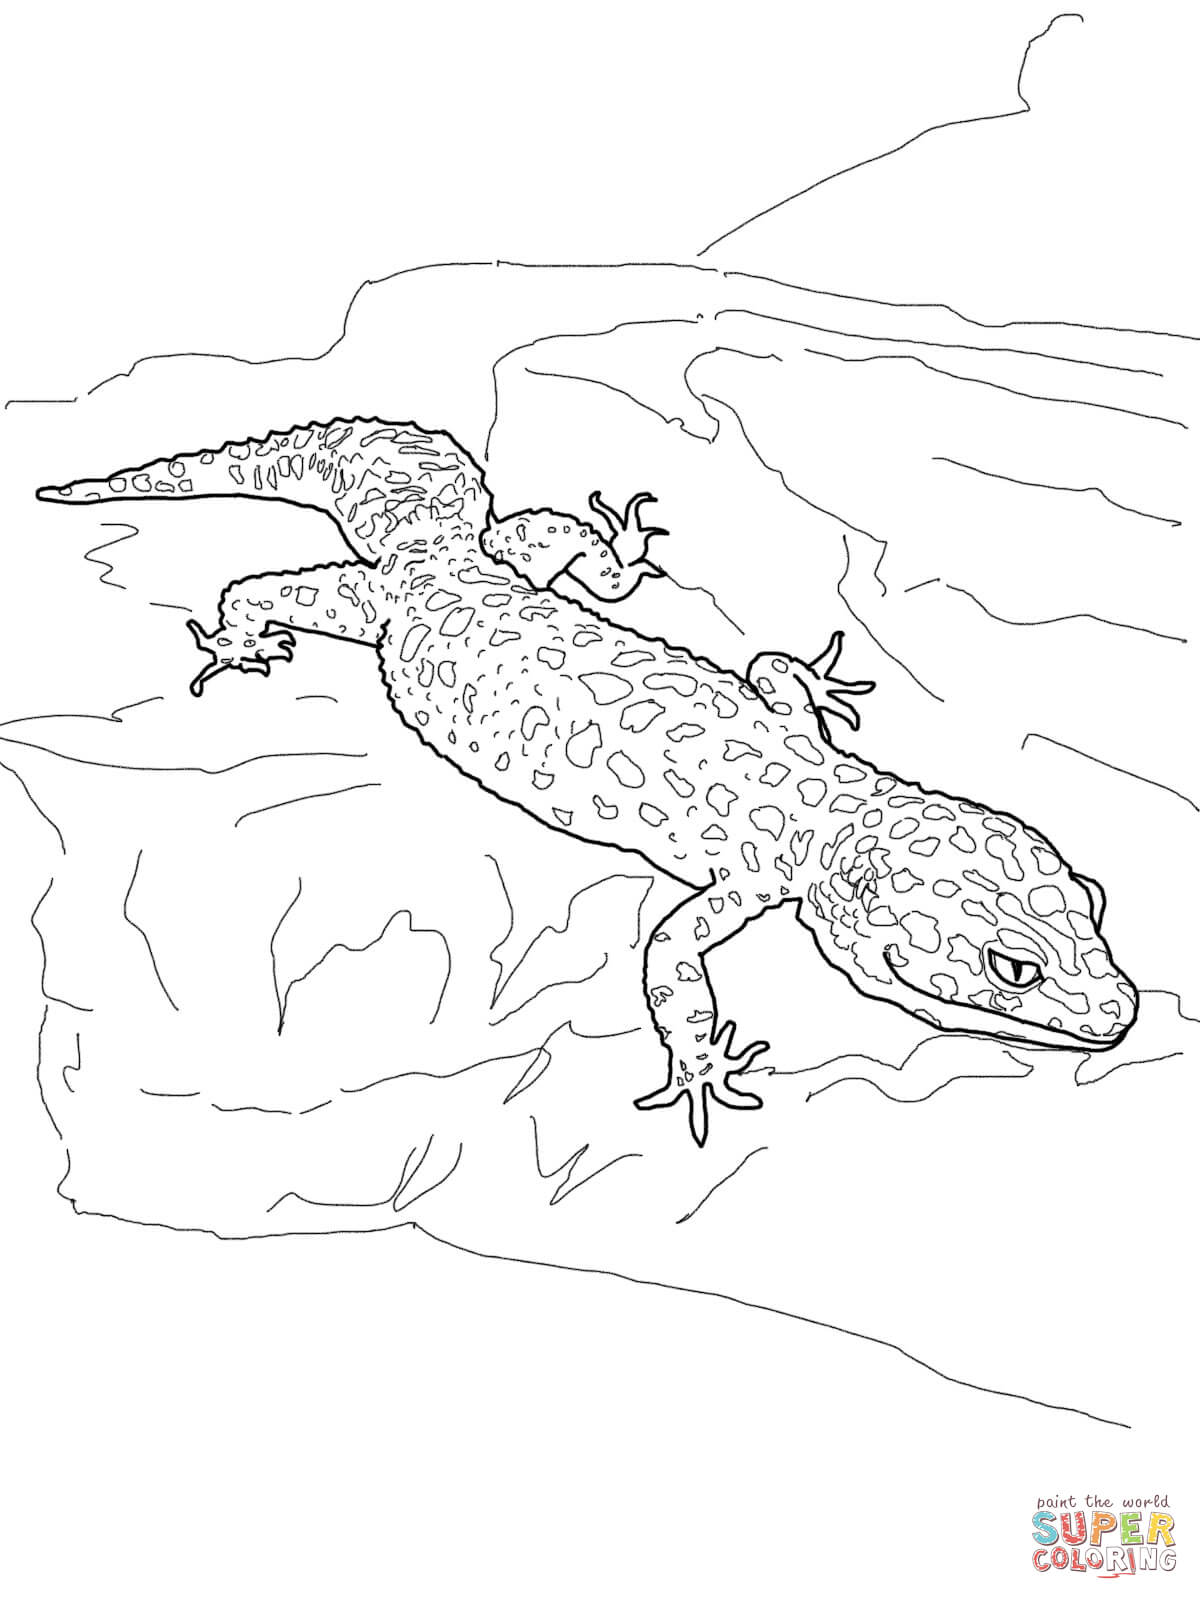 Leopard Lizard coloring #11, Download drawings